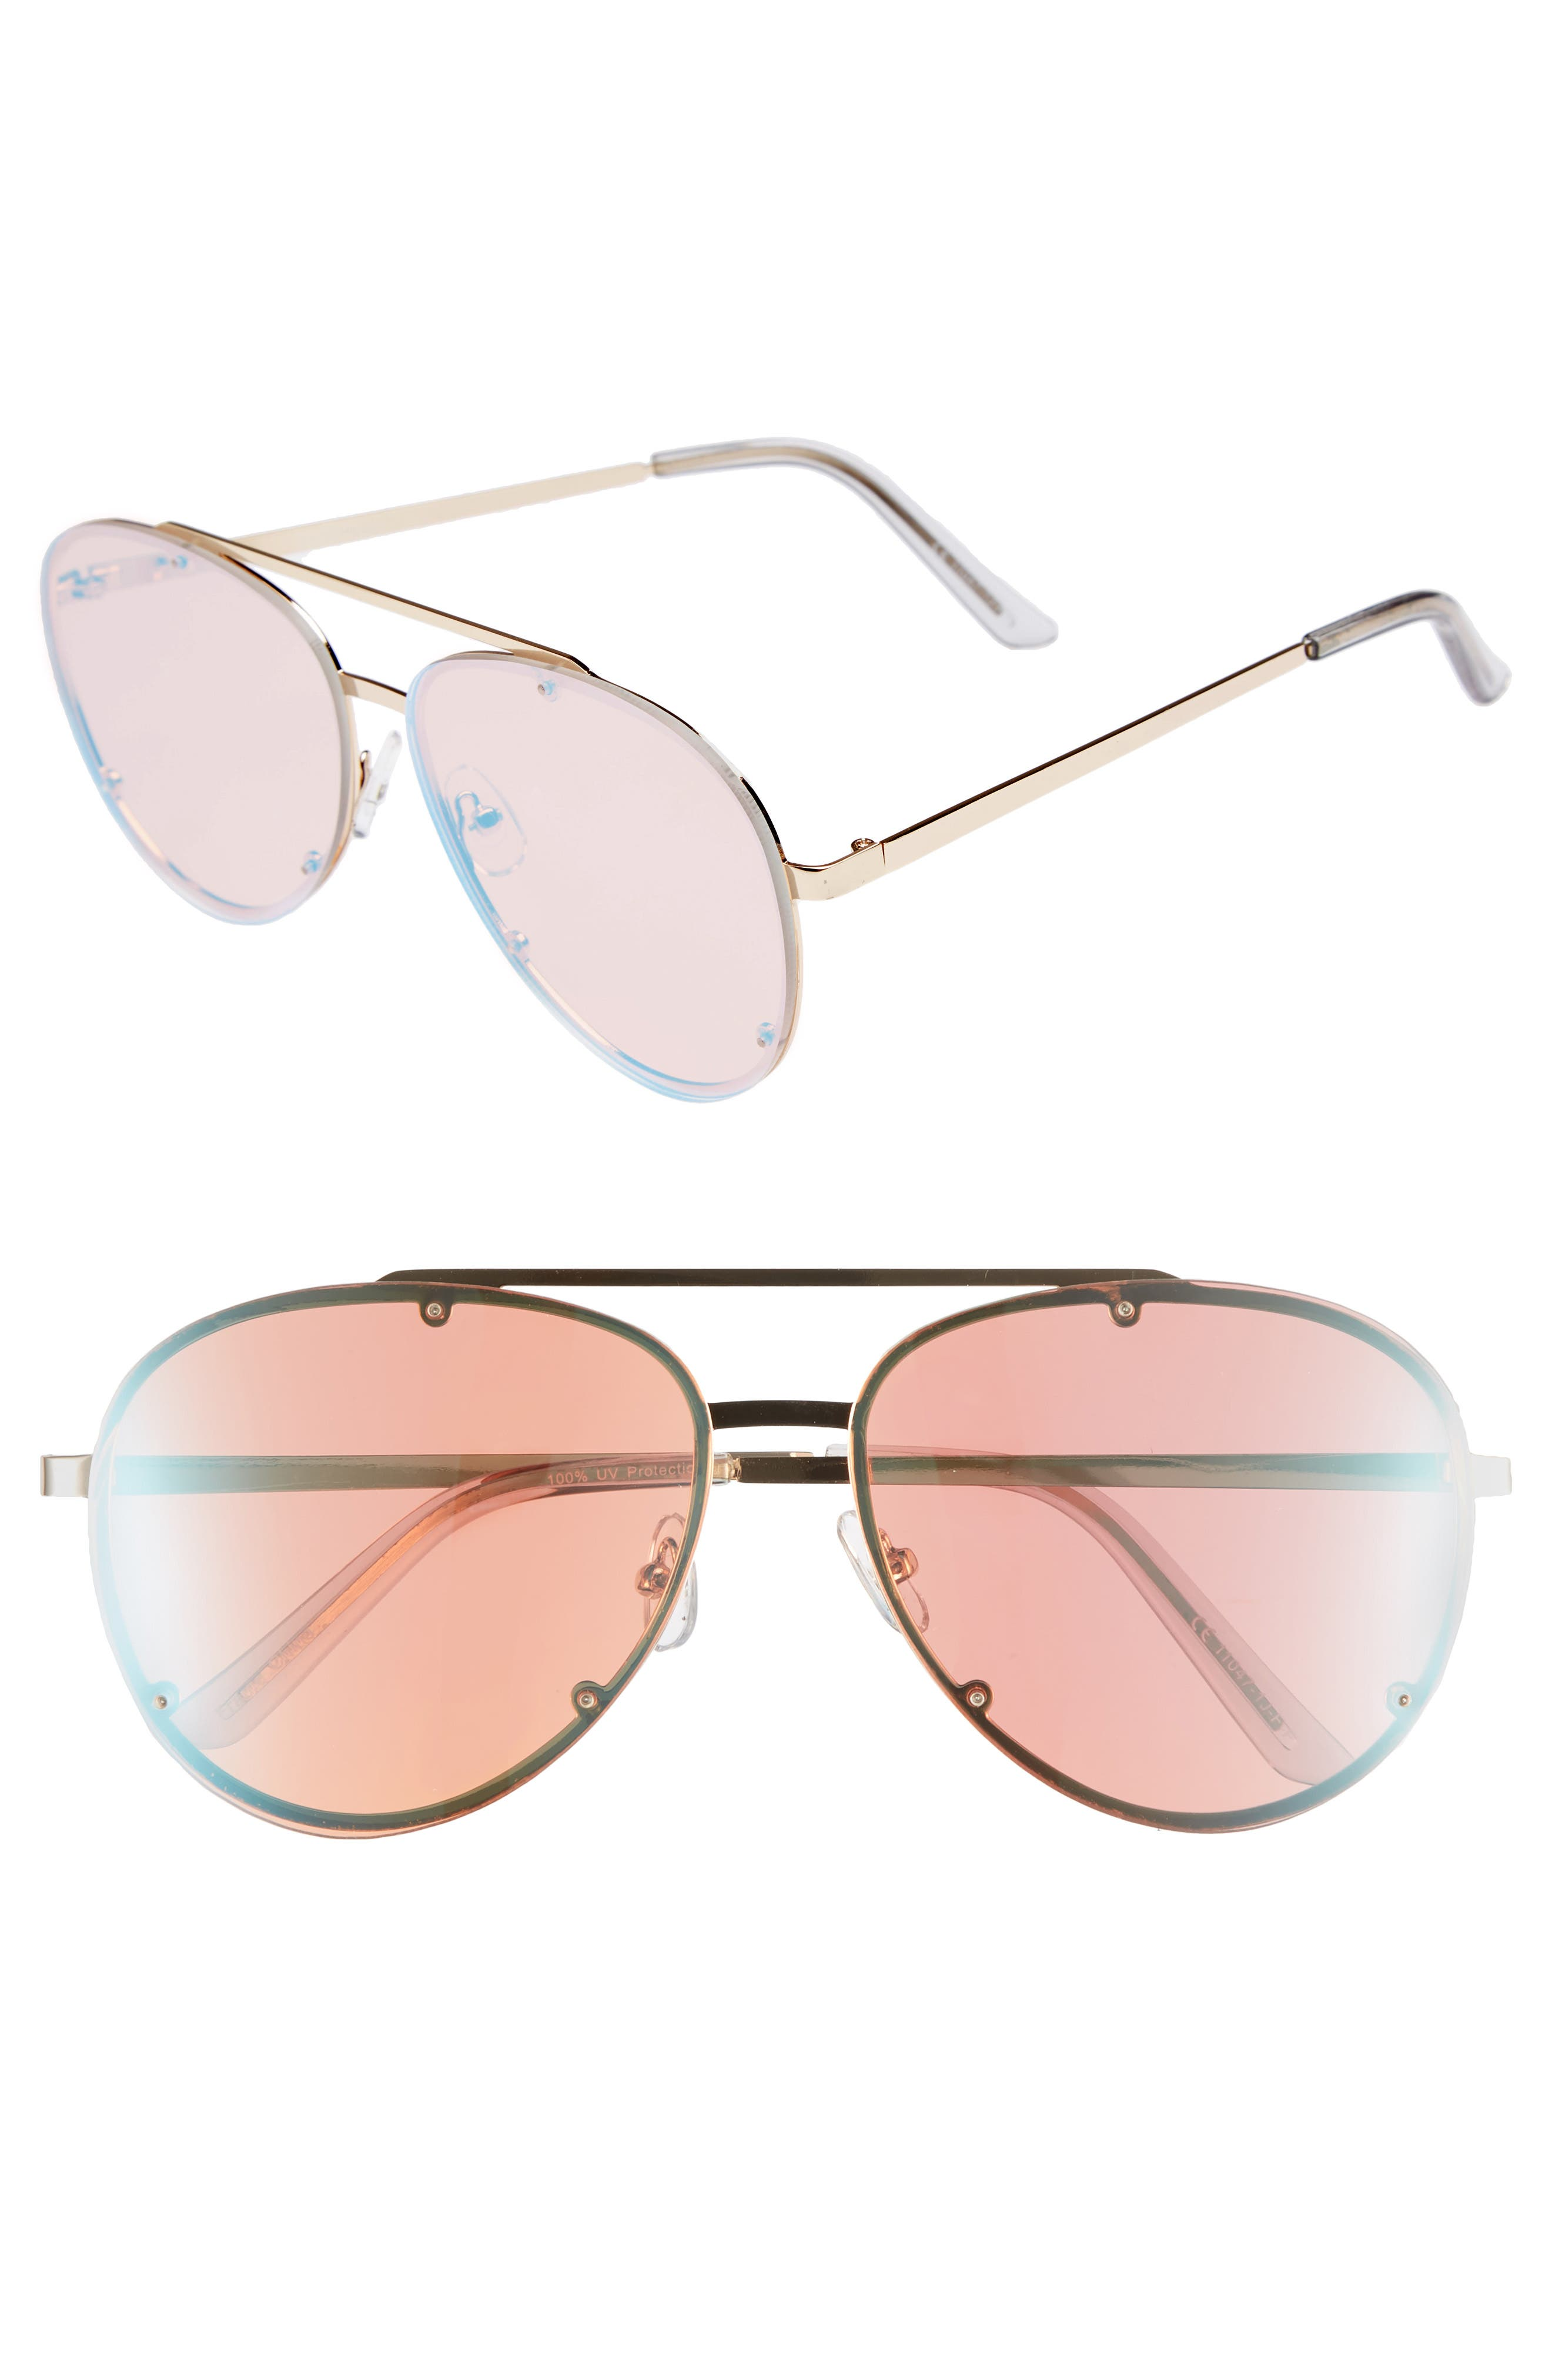 59mm Aviator Sunglasses,                         Main,                         color, Multi